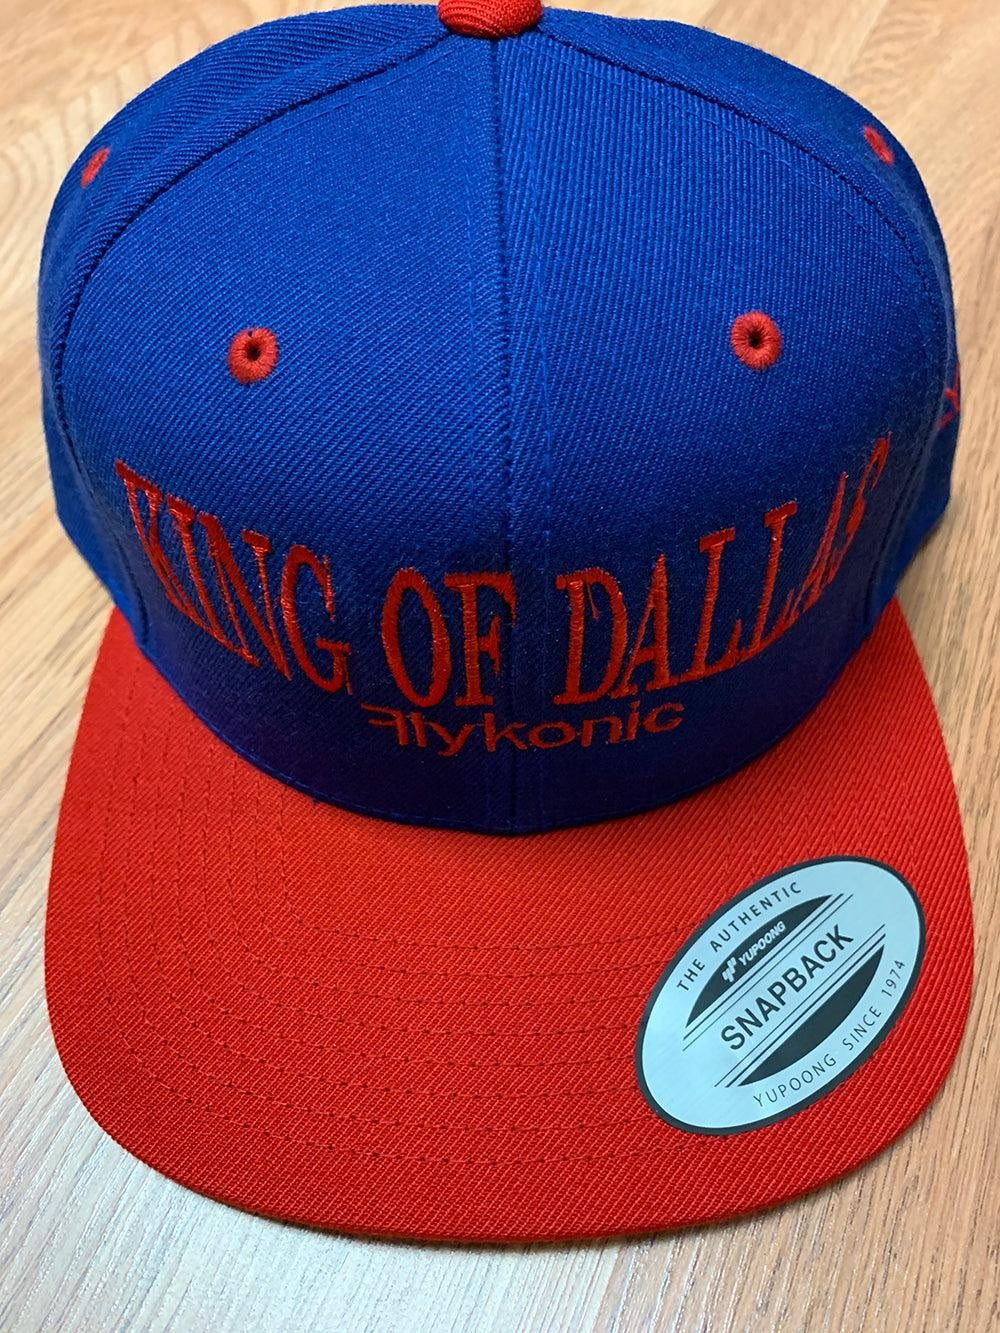 Flykonic King Of Dallas Snapback in Blue and Red